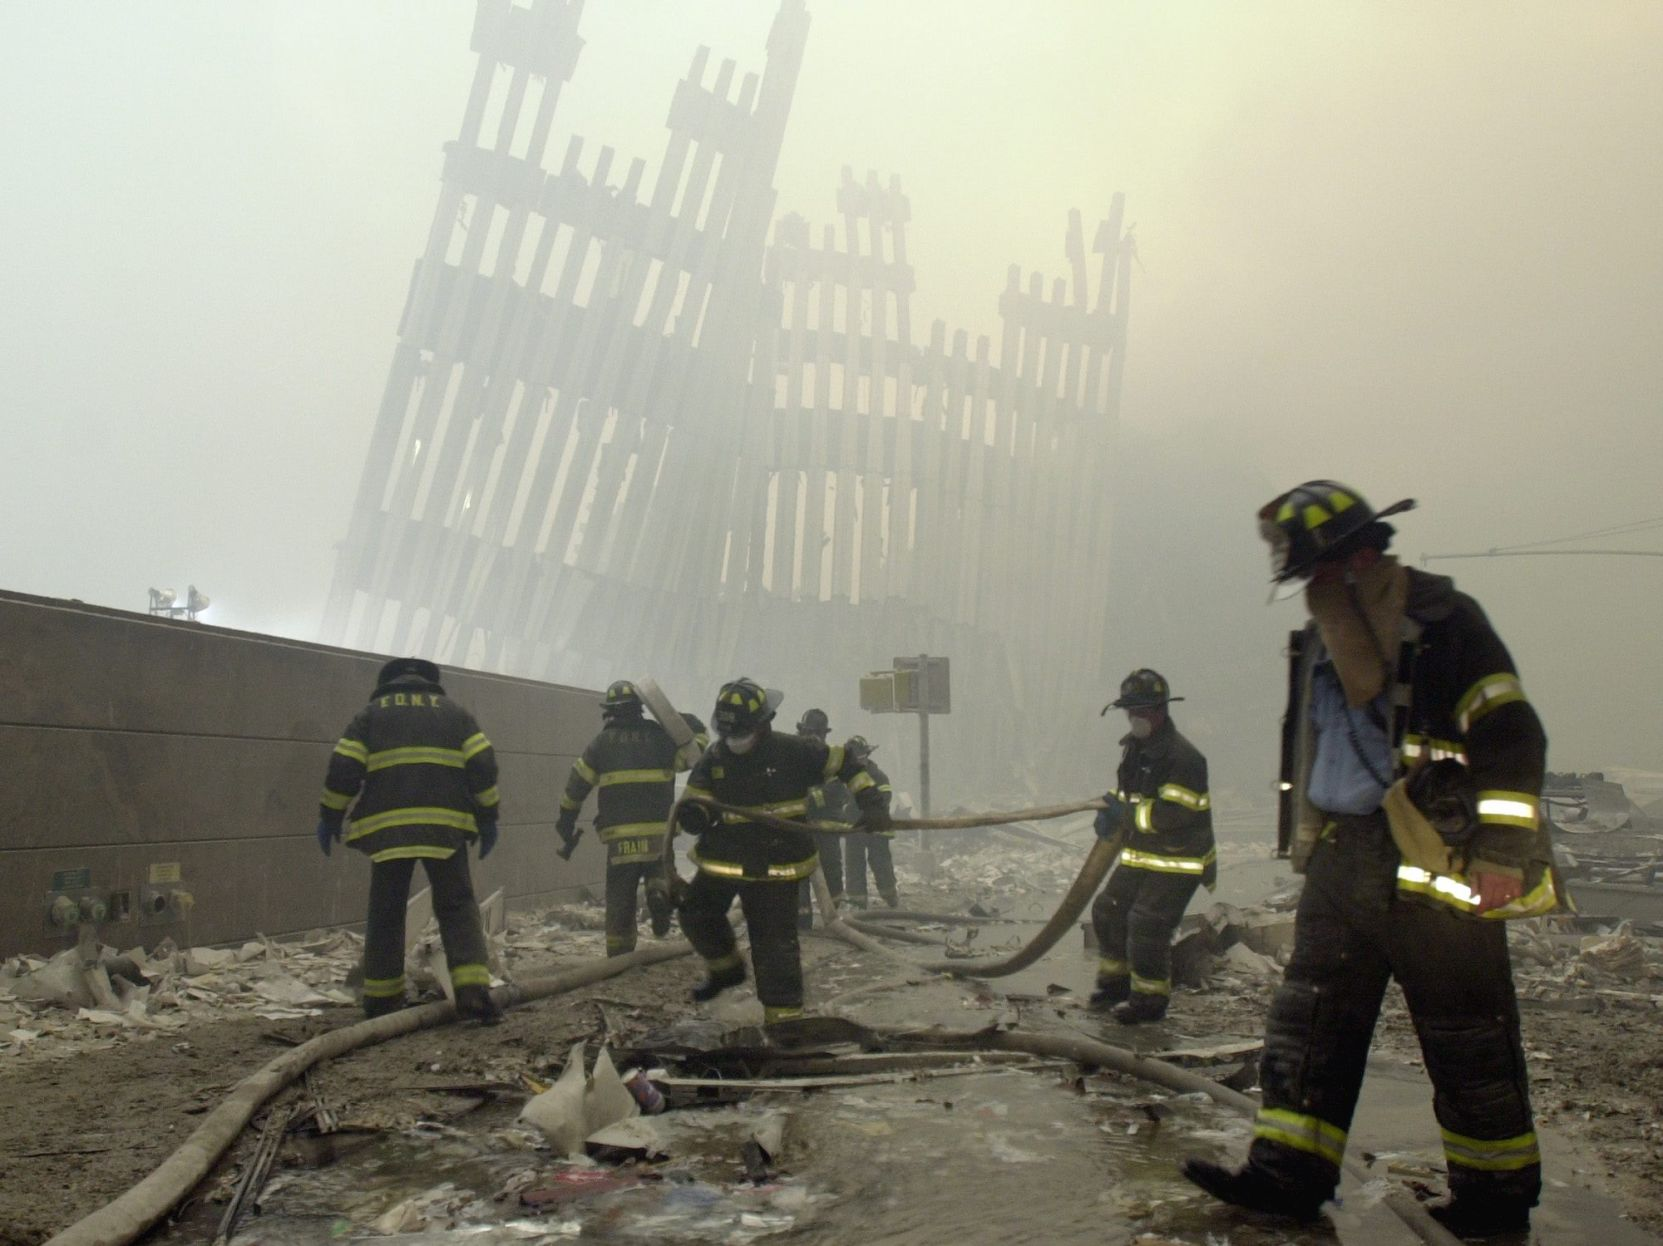 United States pauses to remember 9/11 attacks